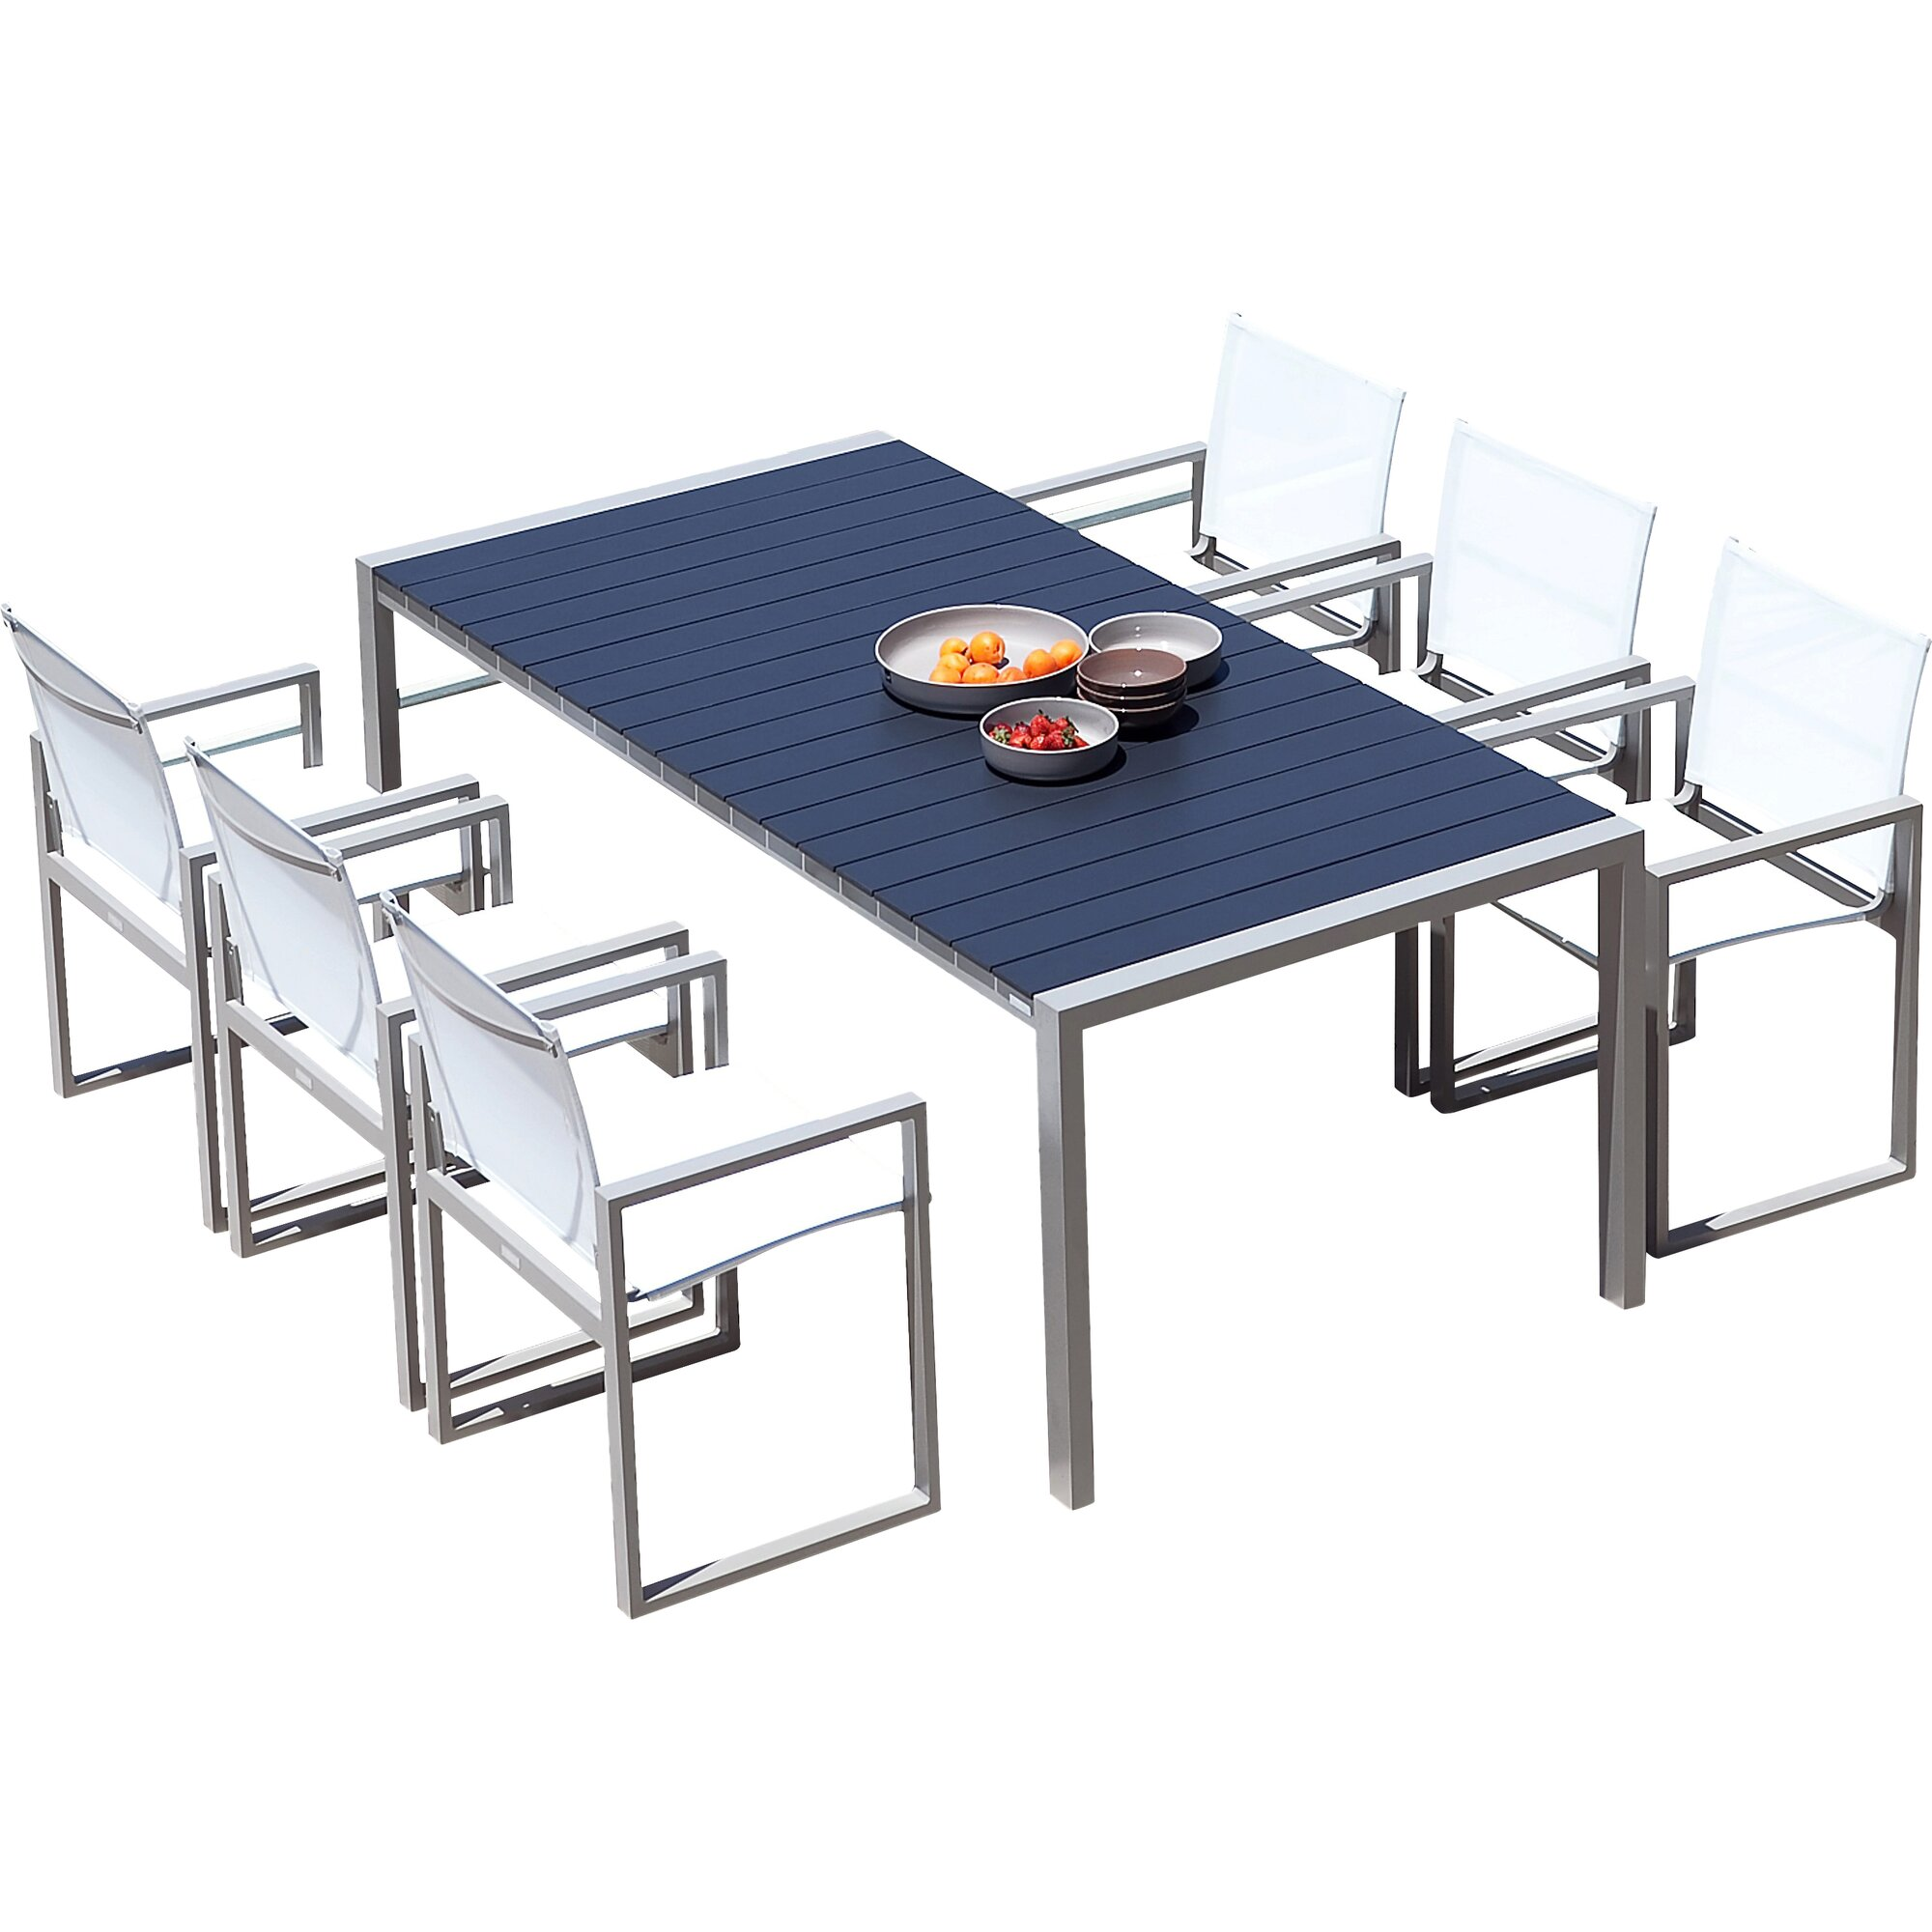 Piano Dining TablePiano Dining Table   AllModern. Piano Dining Room Table. Home Design Ideas